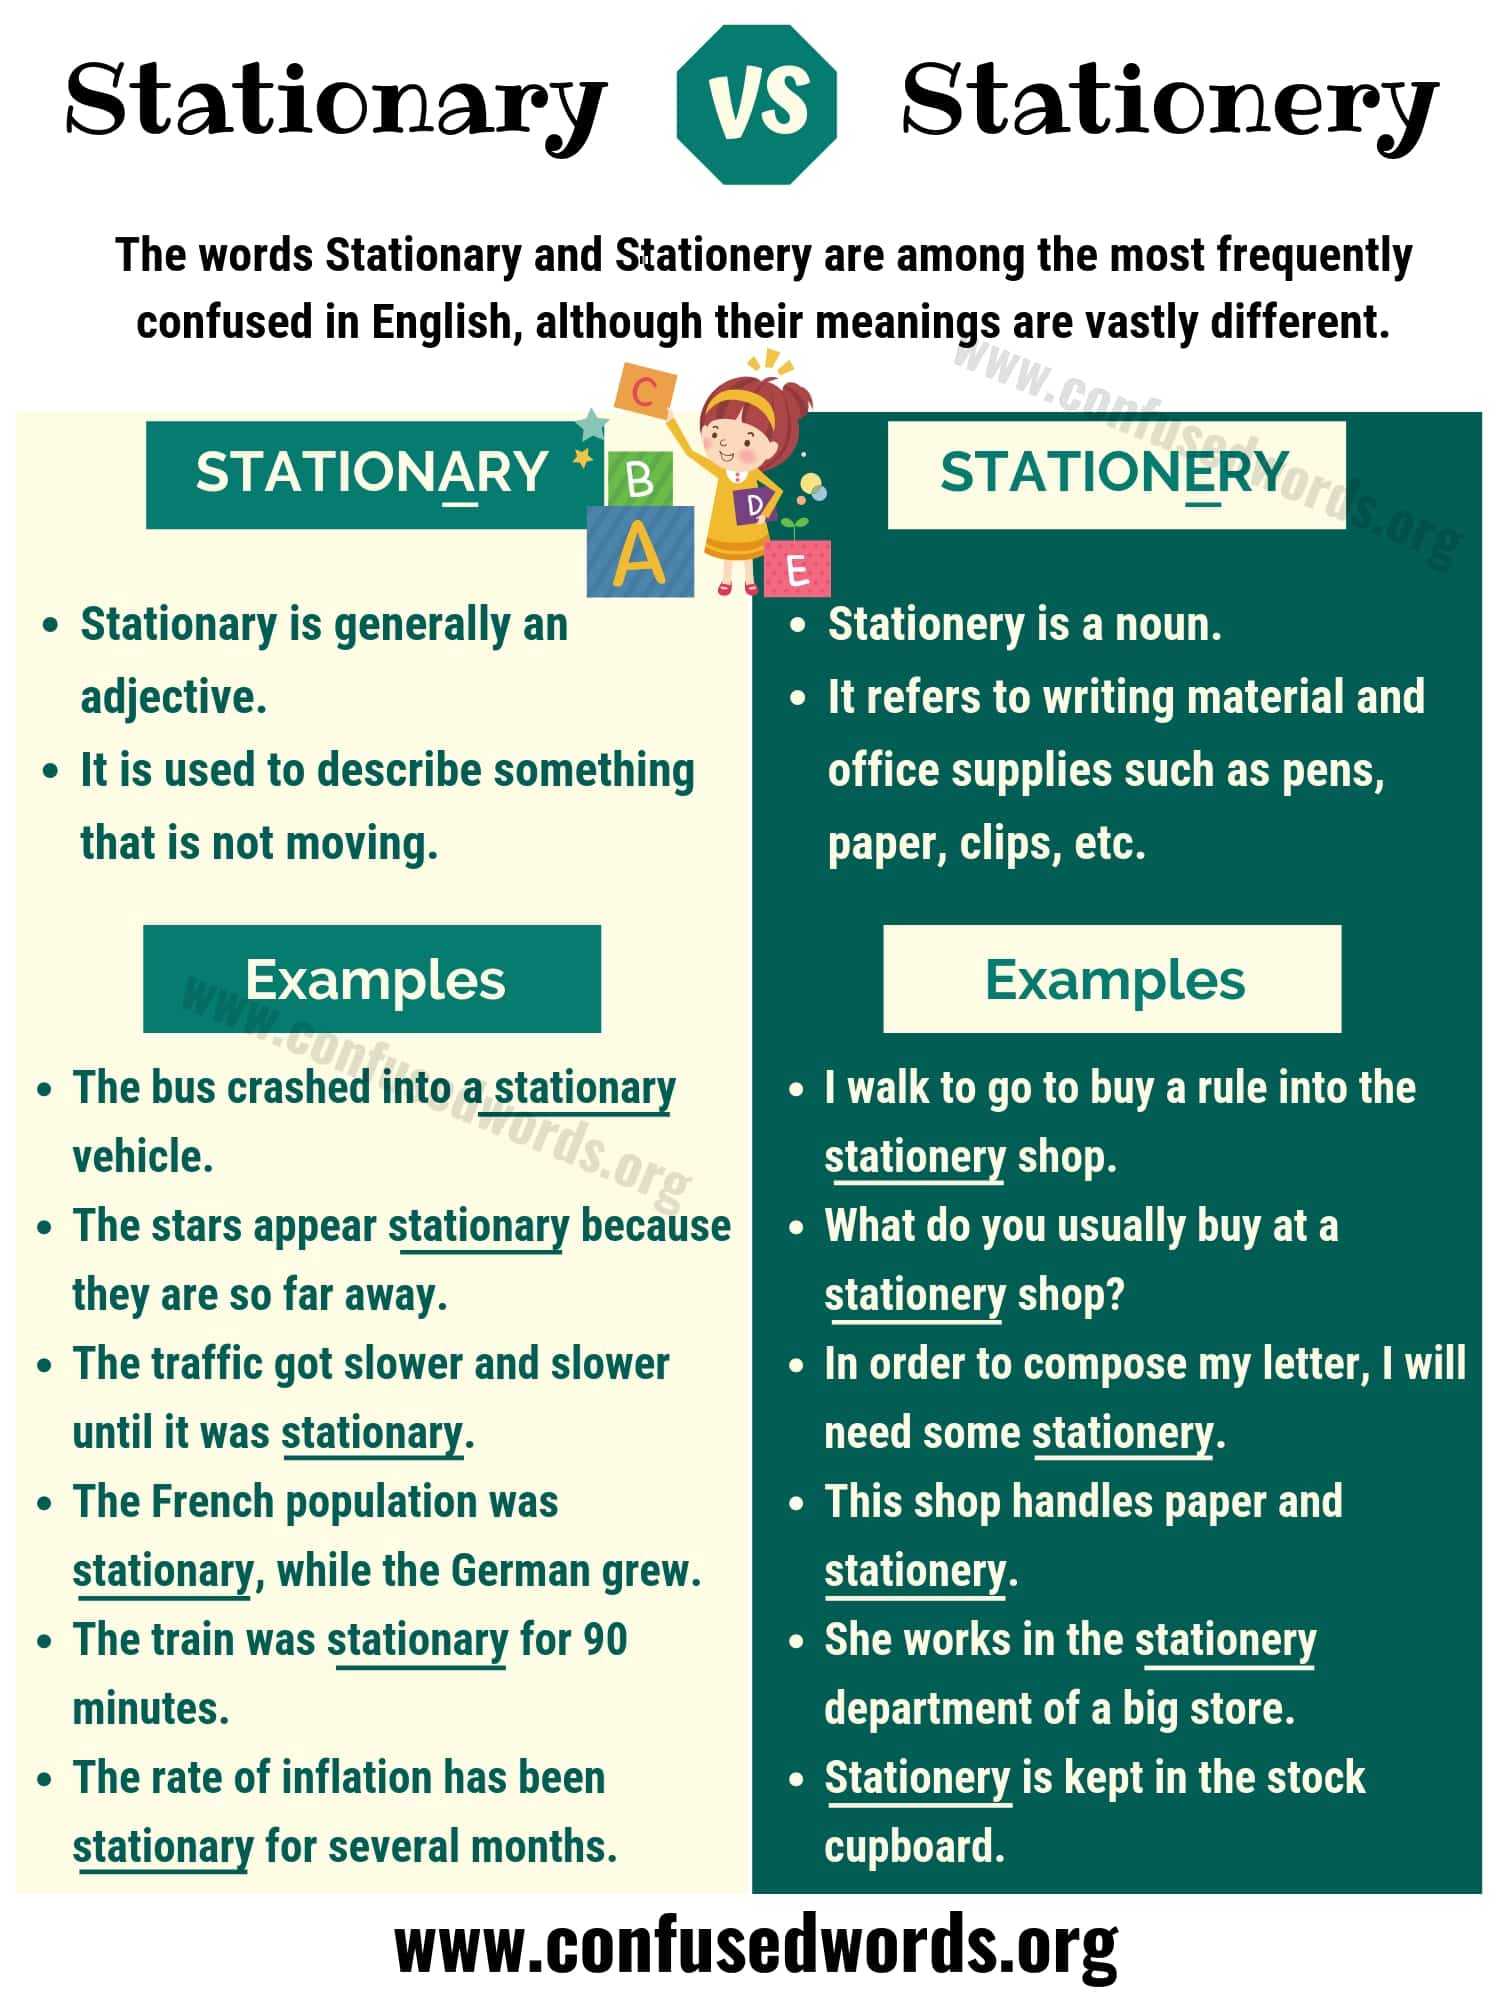 Difference between Stationary vs Stationery